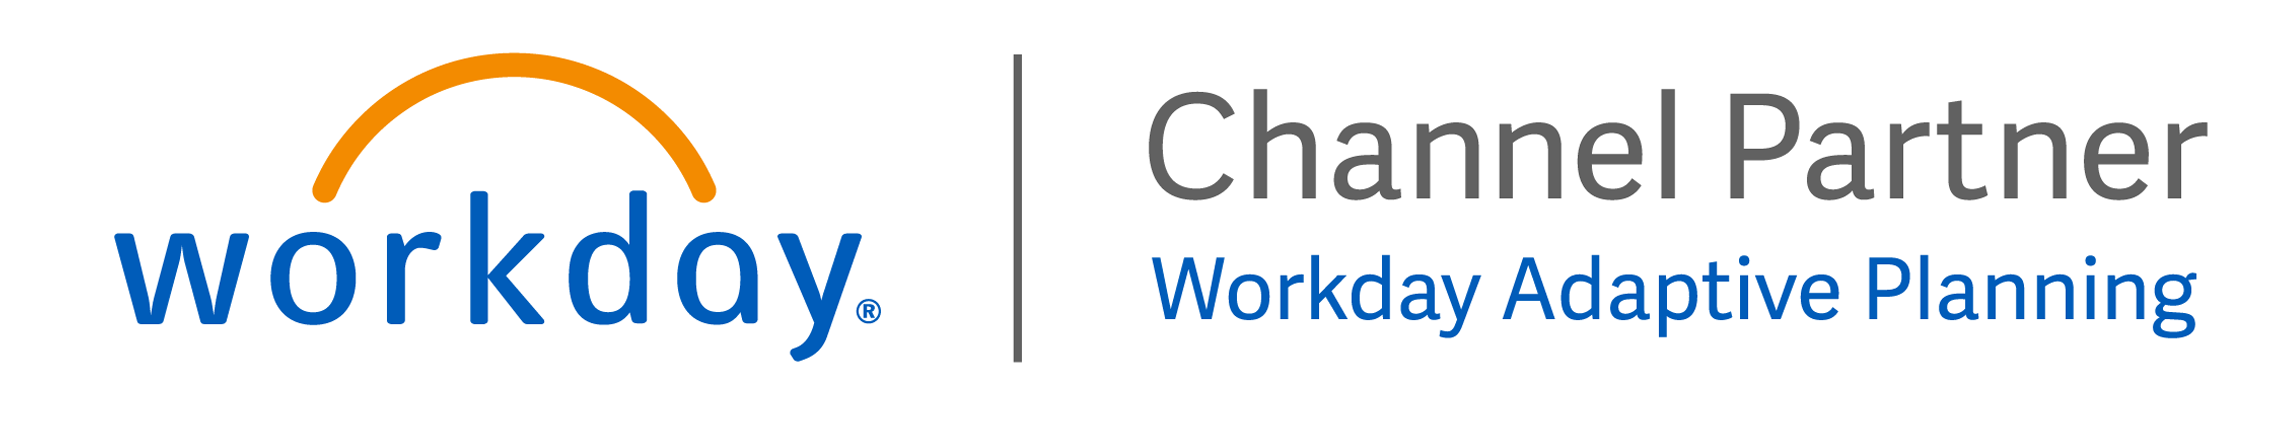 workday partner logo